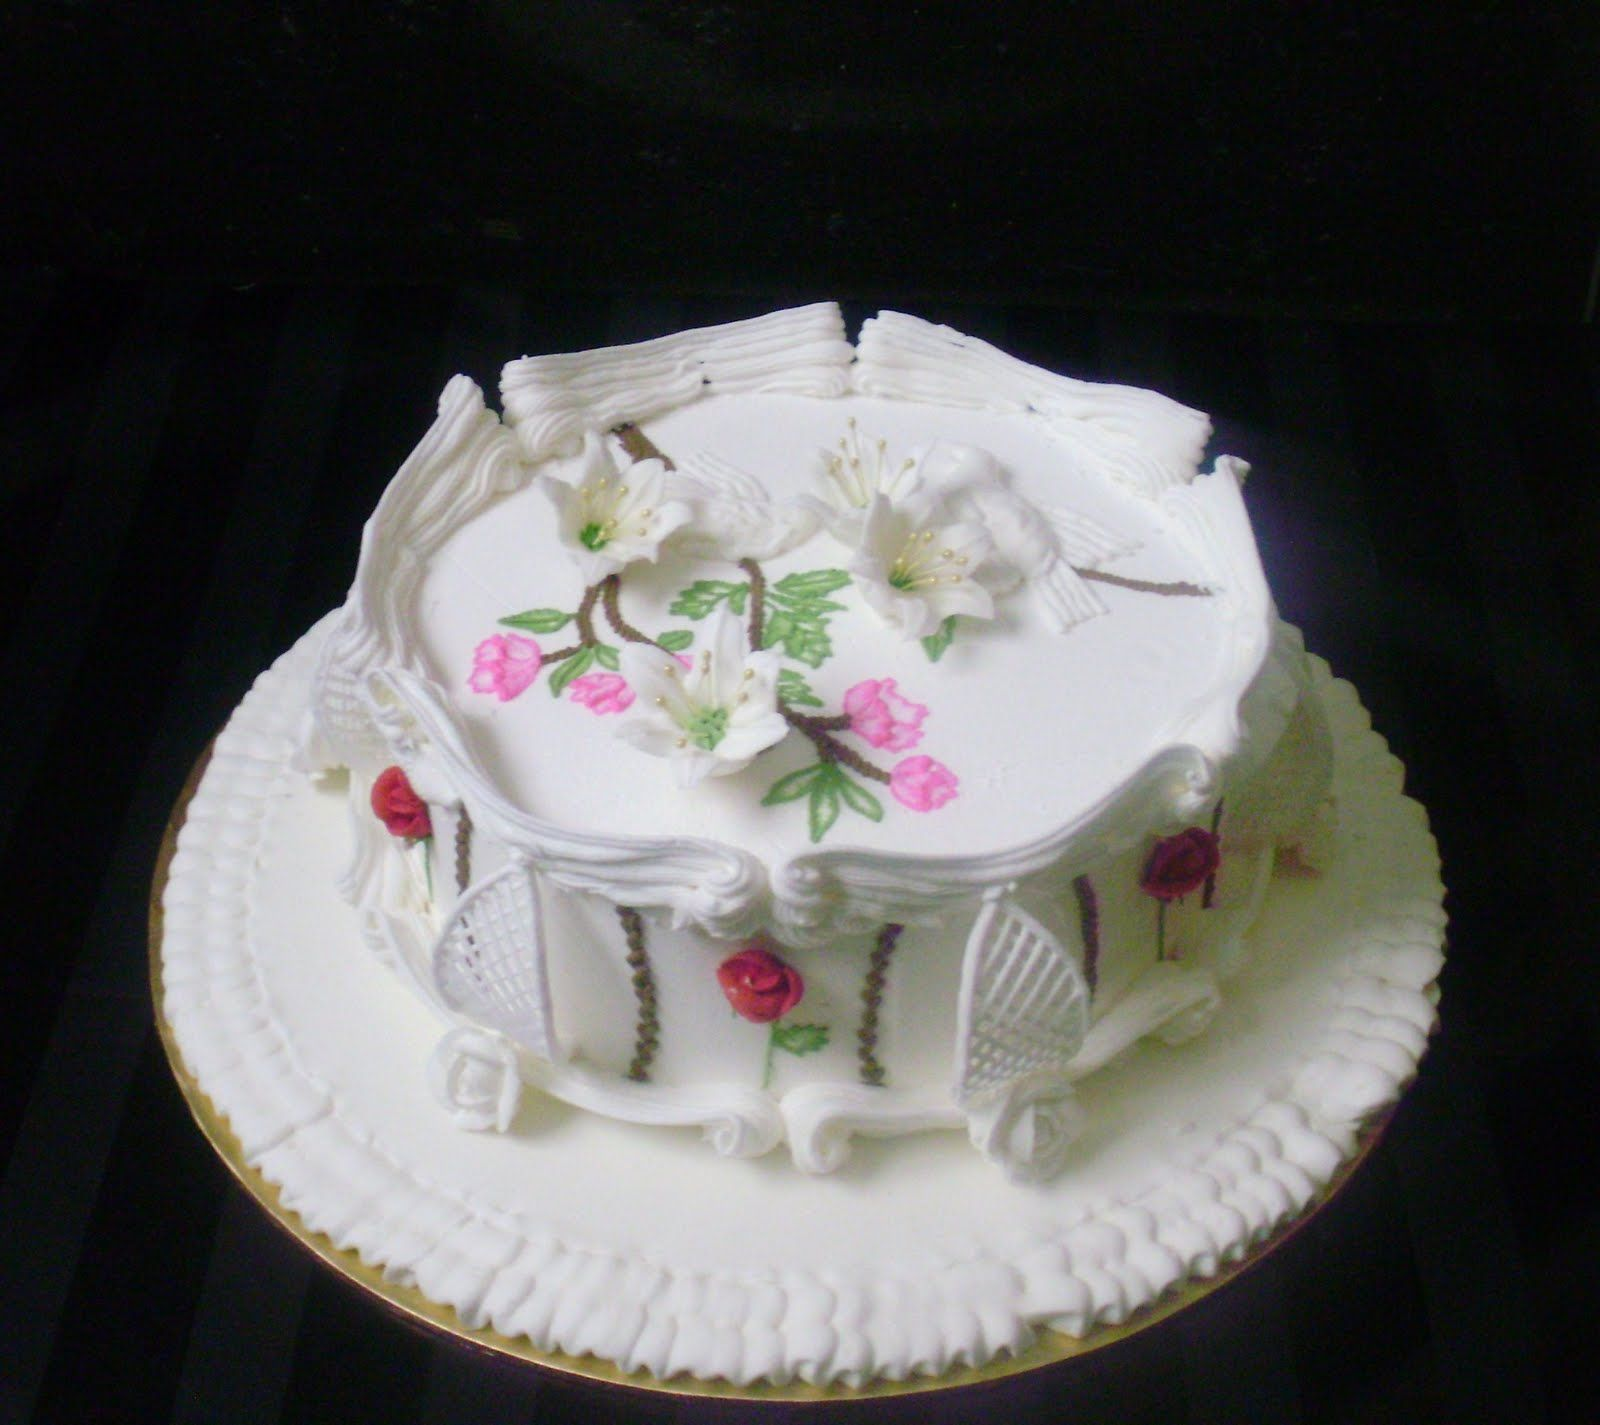 Cute royal icing cake 2 cakes royal icing pinterest royal icing cakes royal icing and - Decoration gateau glacage royal ...